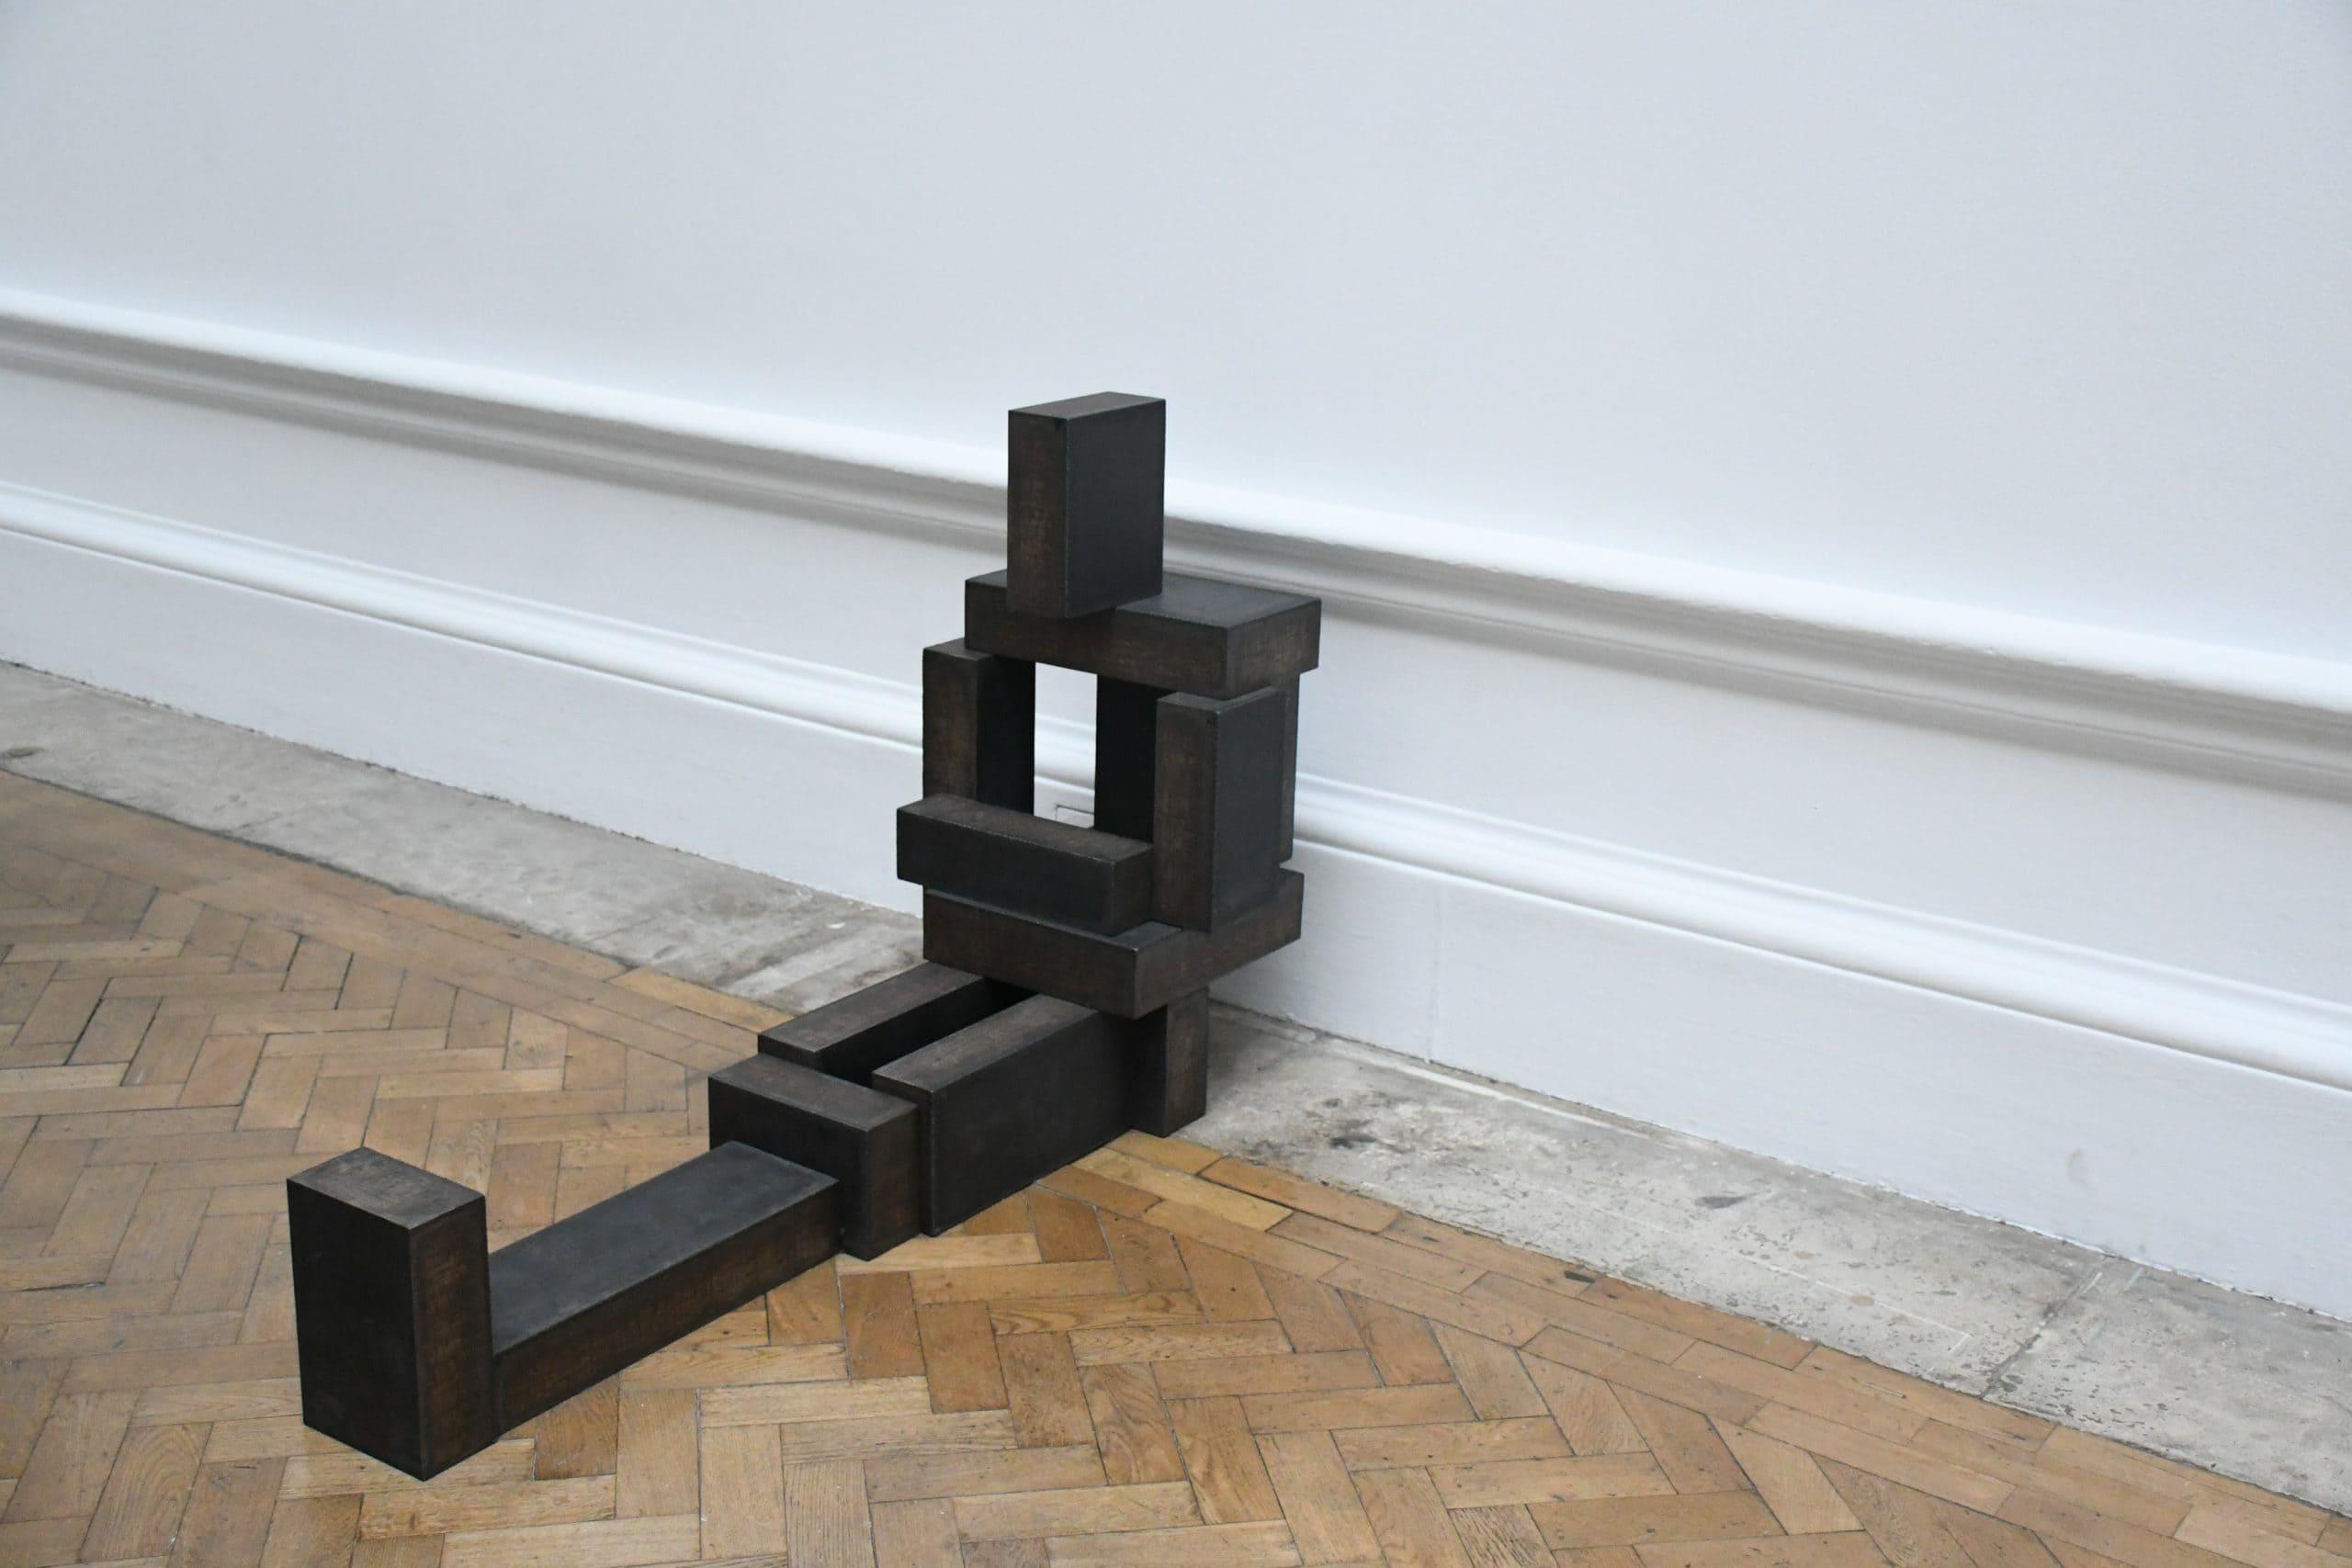 """Antony Gormley sculpture. Photograph by Ellen Vrana. Featured in """"An Increasing Atomization of Things"""" on The Examined Life."""